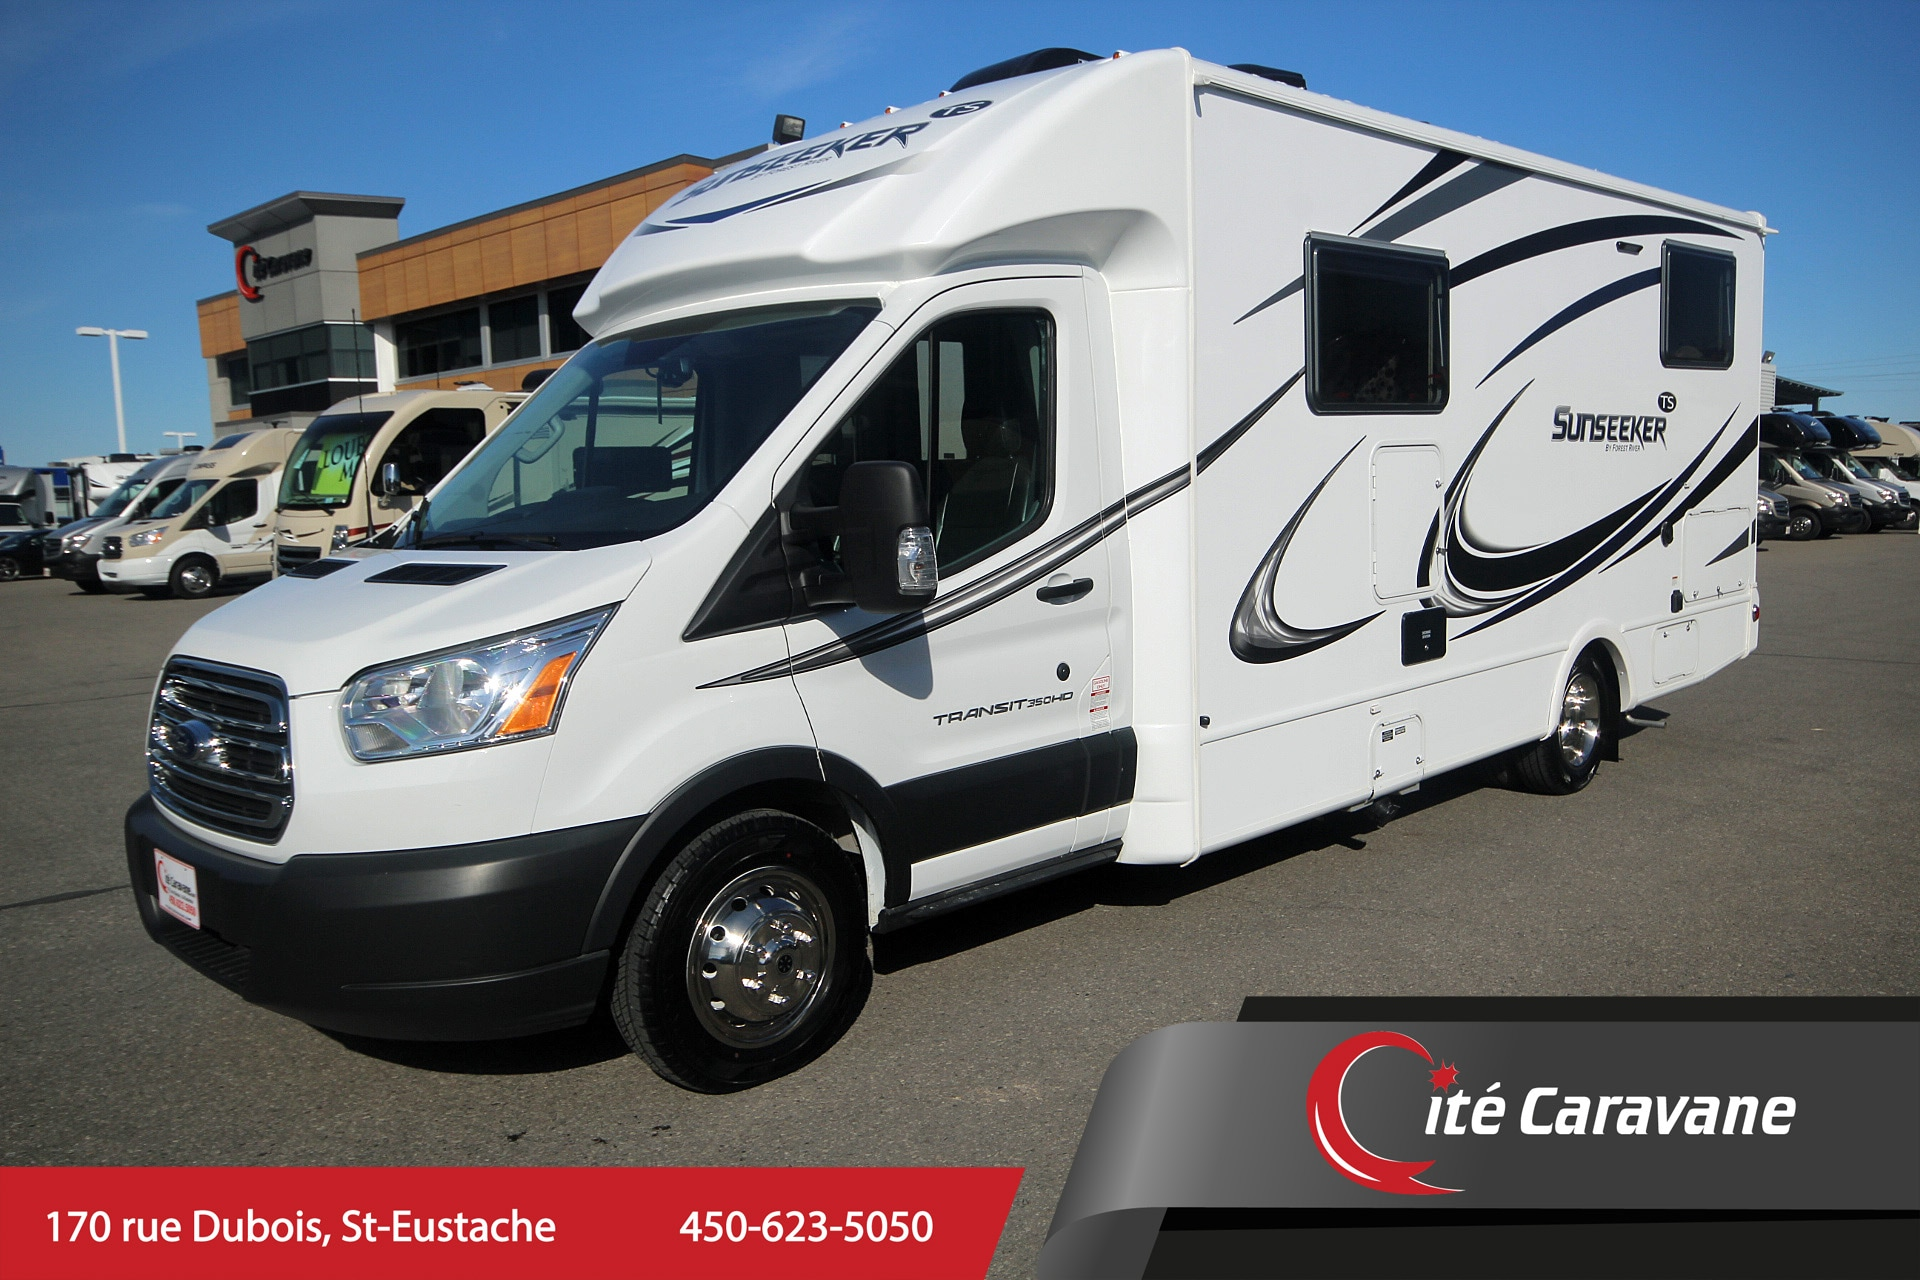 2019 FOREST RIVER Sunseeker 2380 TS B+ 2019 usagé Ford transit